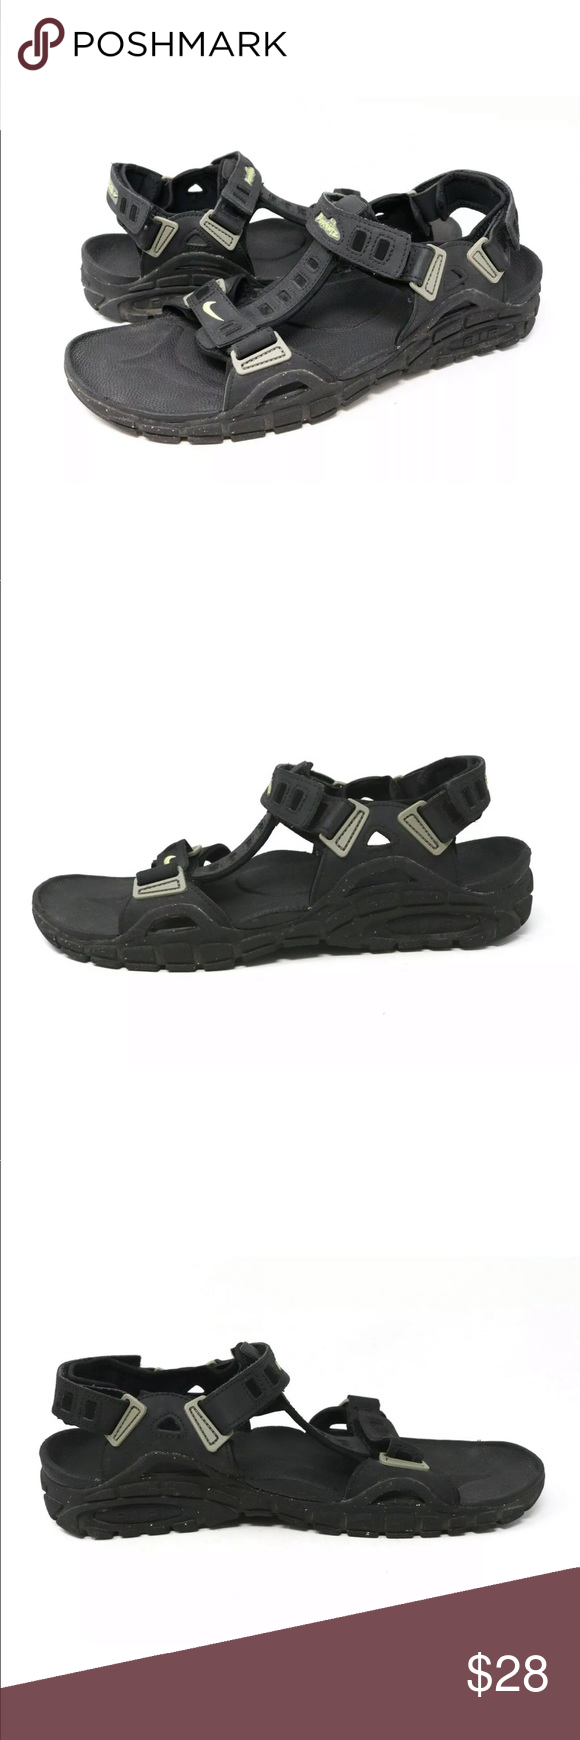 Wm0pvnoy8n Deschutz Air Sandals Acg Nike Sport Men's bI6Yvgf7y